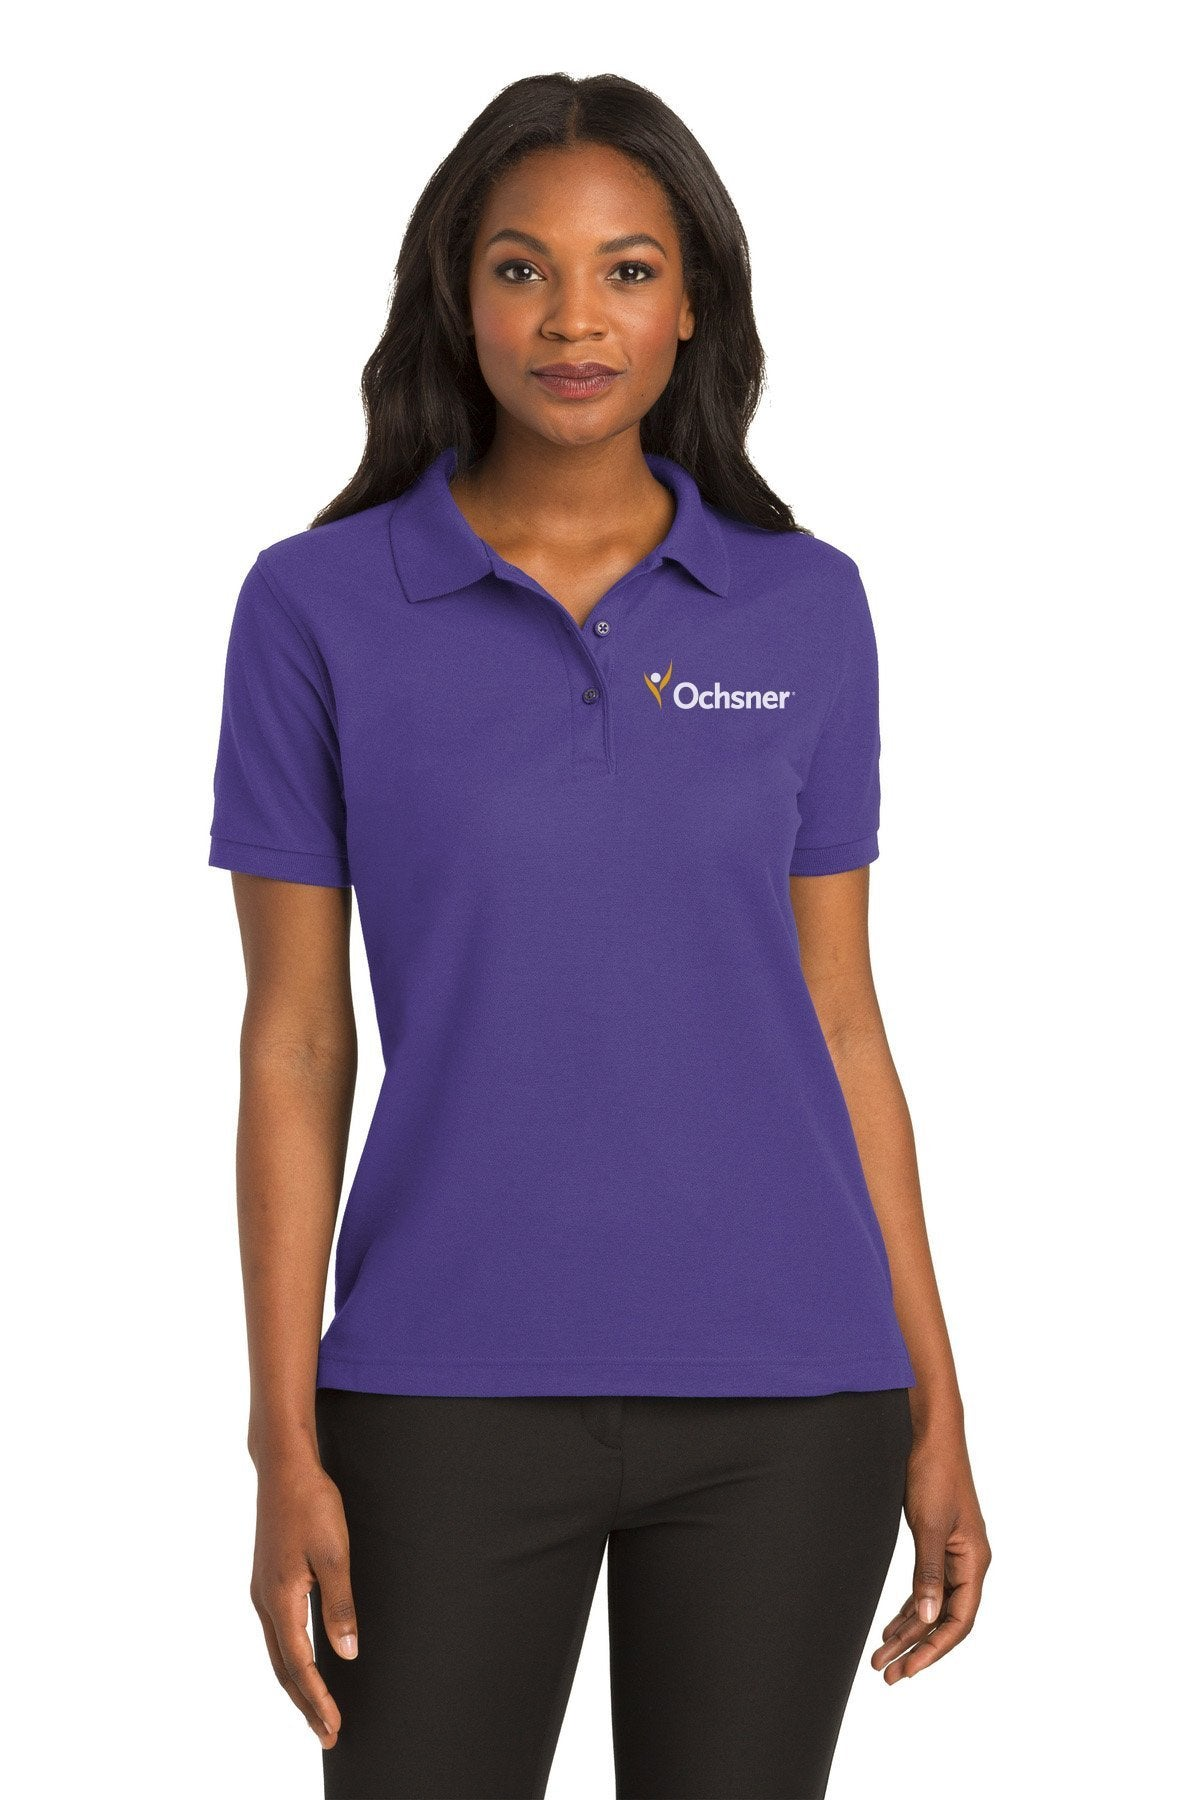 Port Authority Women's Silk Touch Polo #2 w/Ochsner